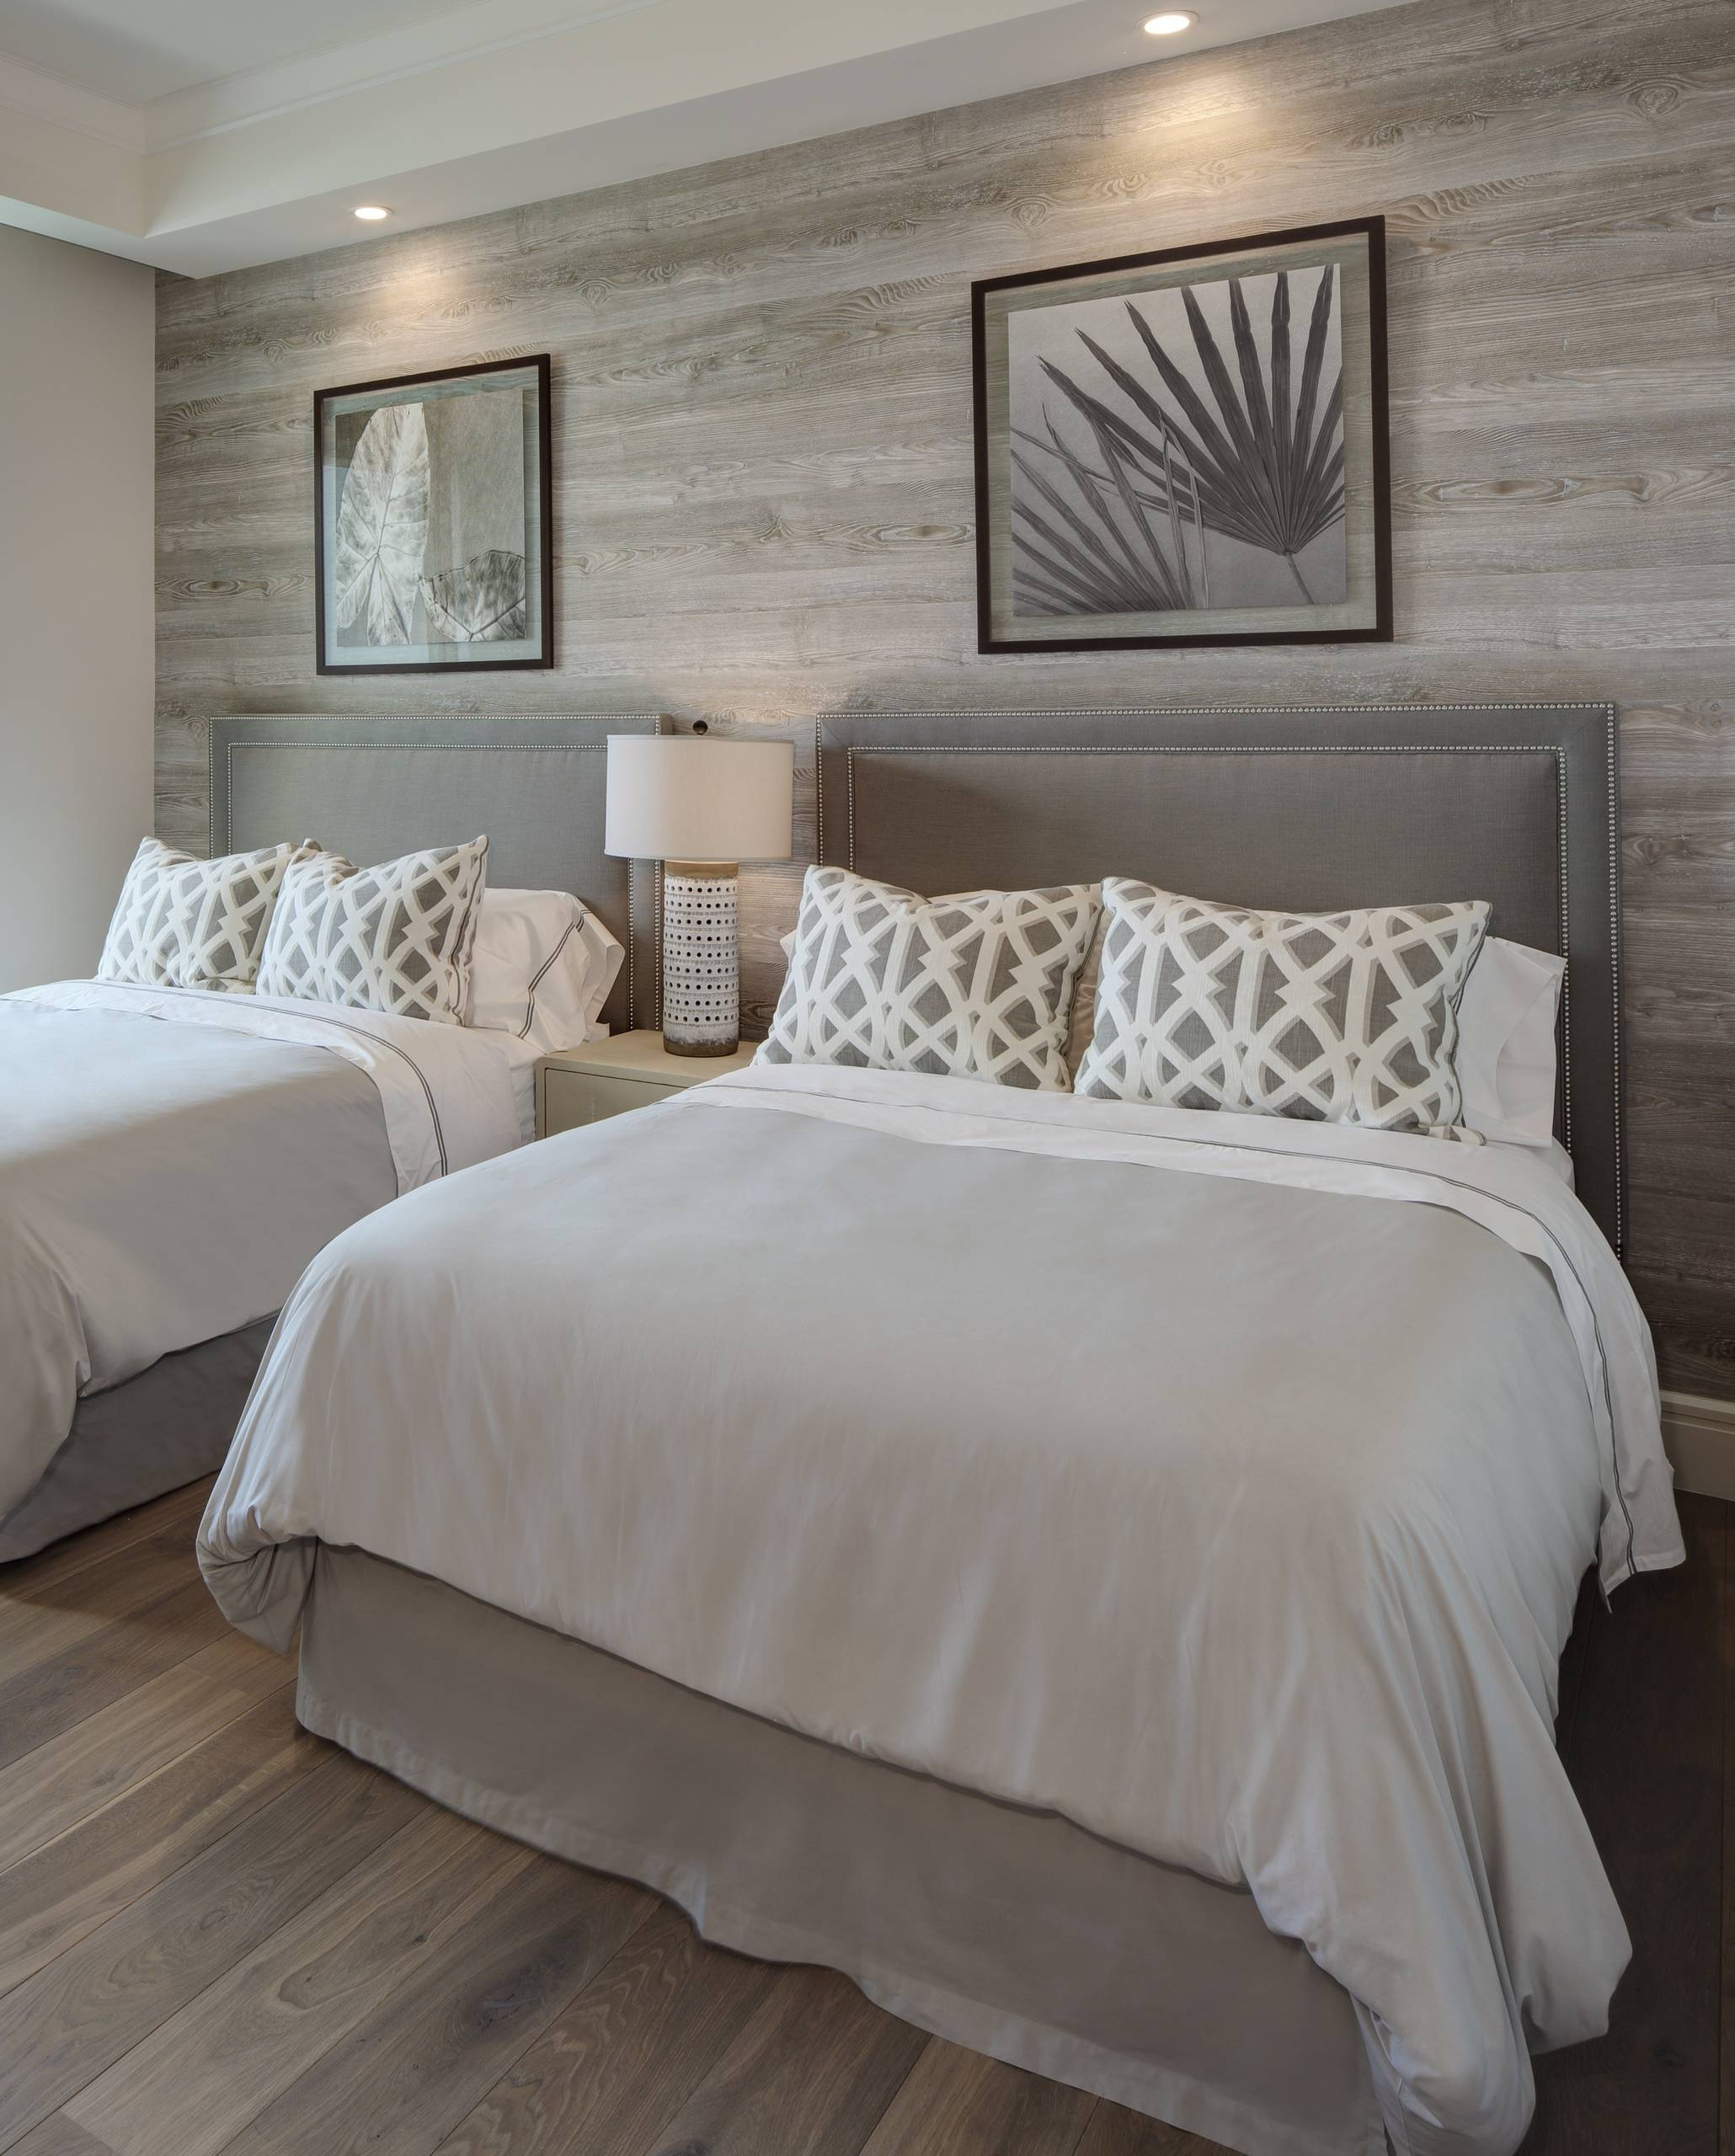 9 Beautiful Guest Bedroom Pictures & Ideas - January, 9  Houzz